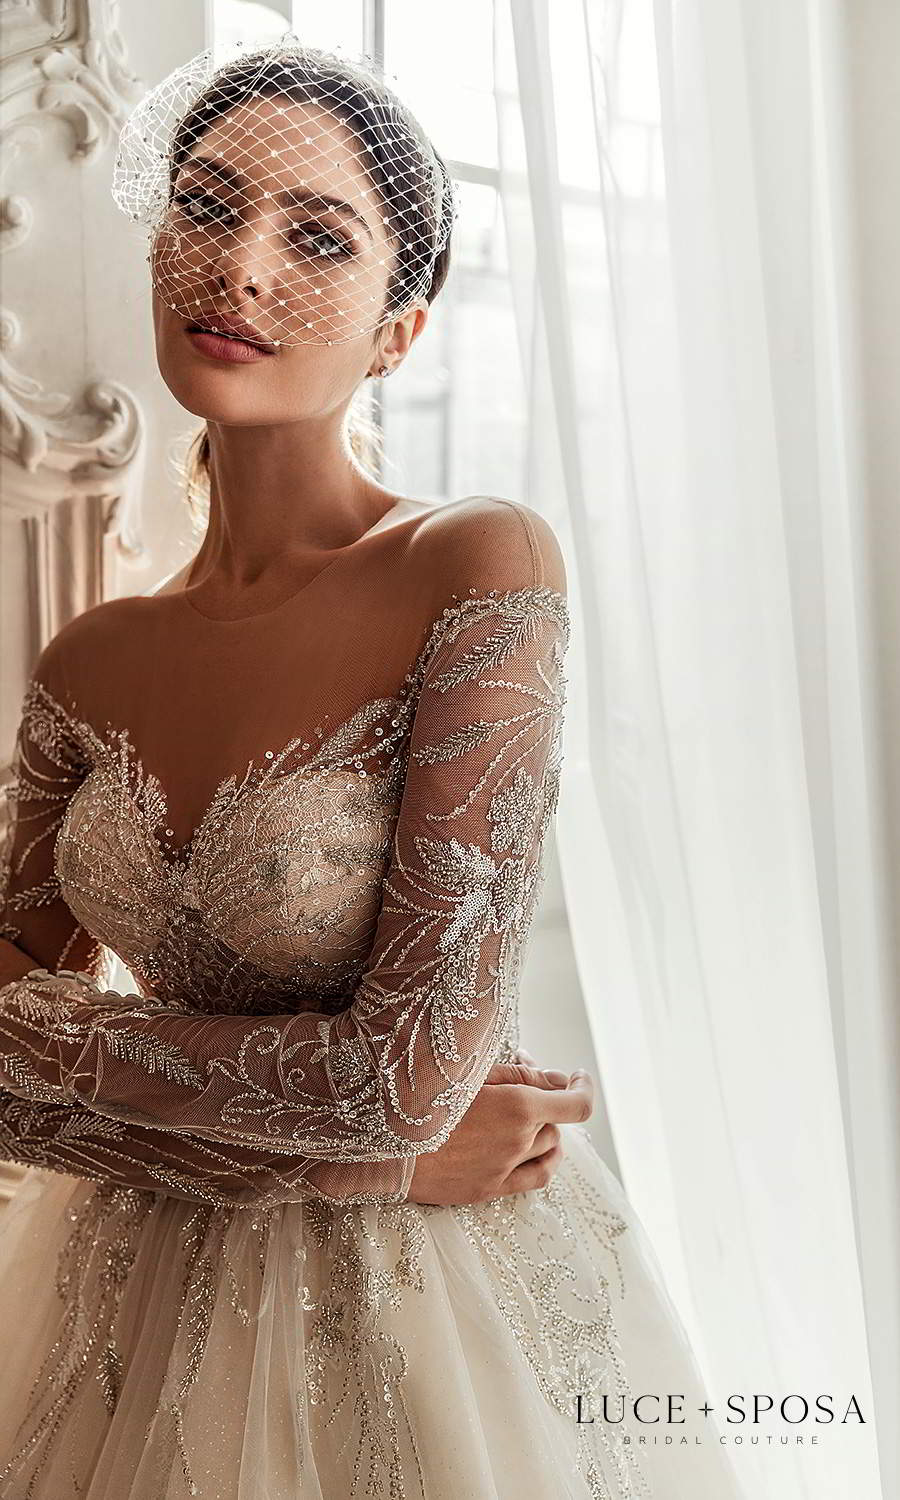 luce sposa 2021 shades of couture bridal sheer long sleeves illusion jewel neck sweetheart neckline heavily embellished a line ball gown wedding dress chapel train (sofia) zv